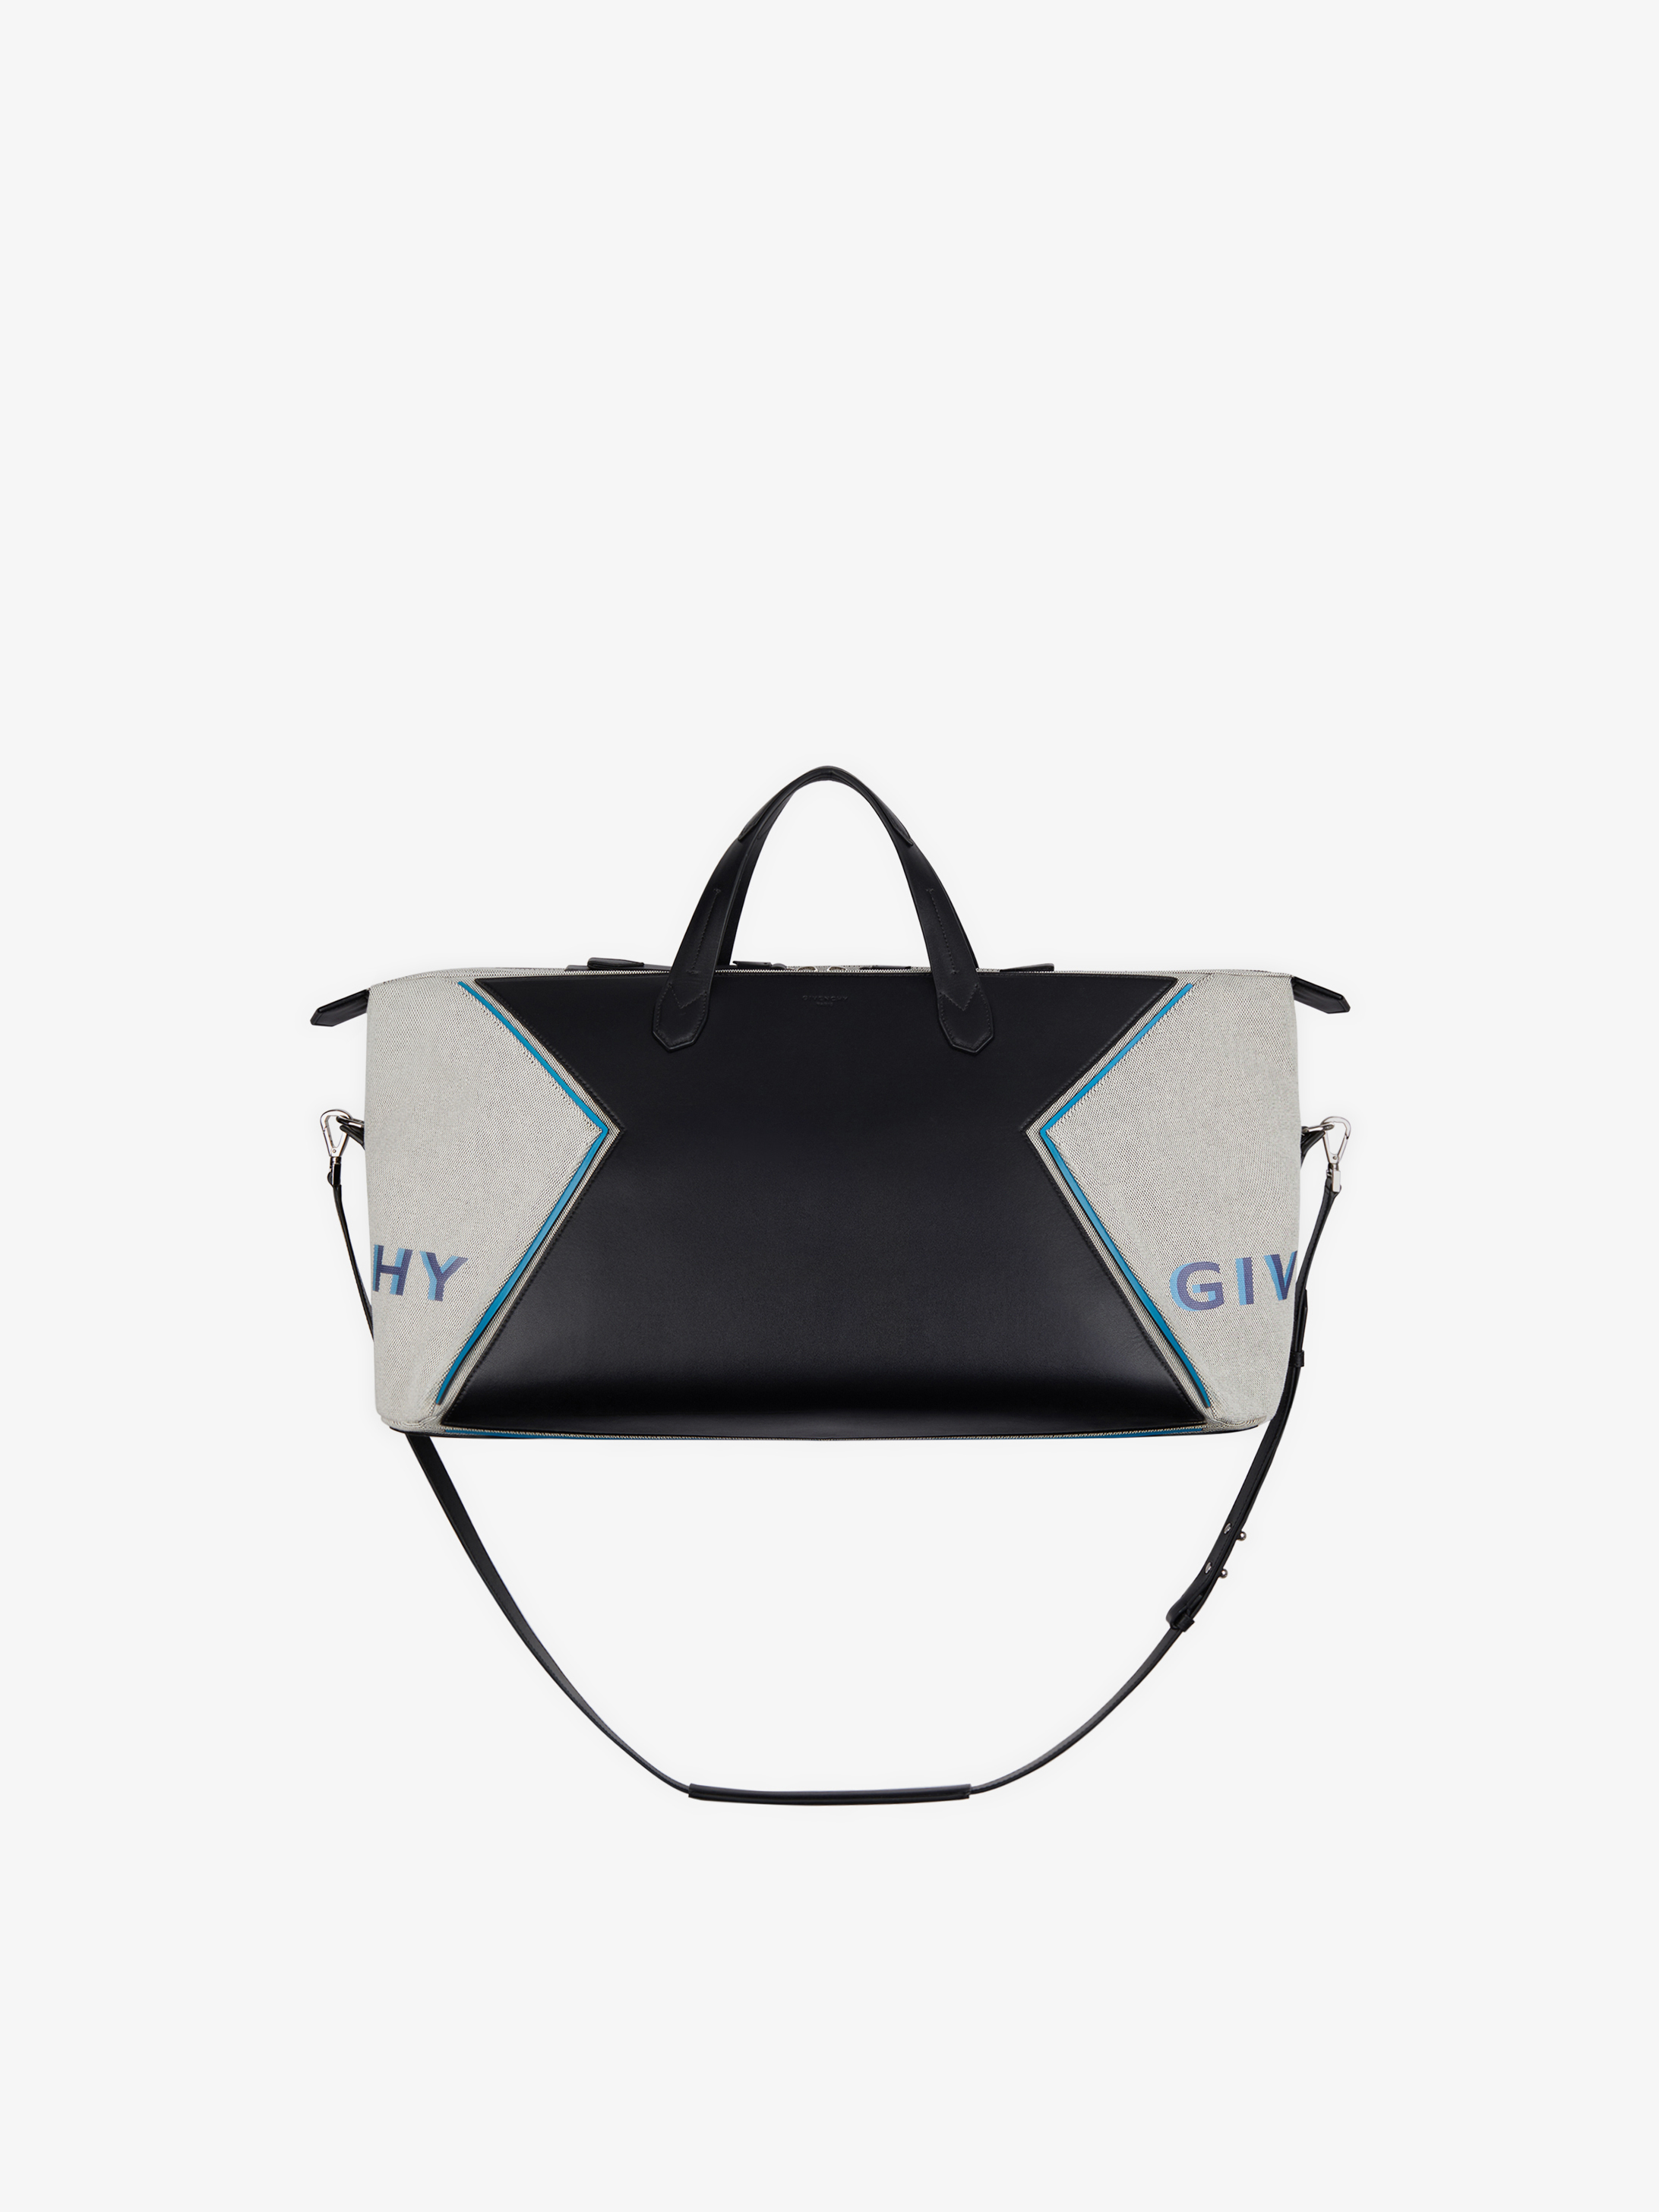 Sac week-end Bond GIVENCHY PARIS en cuir et toile